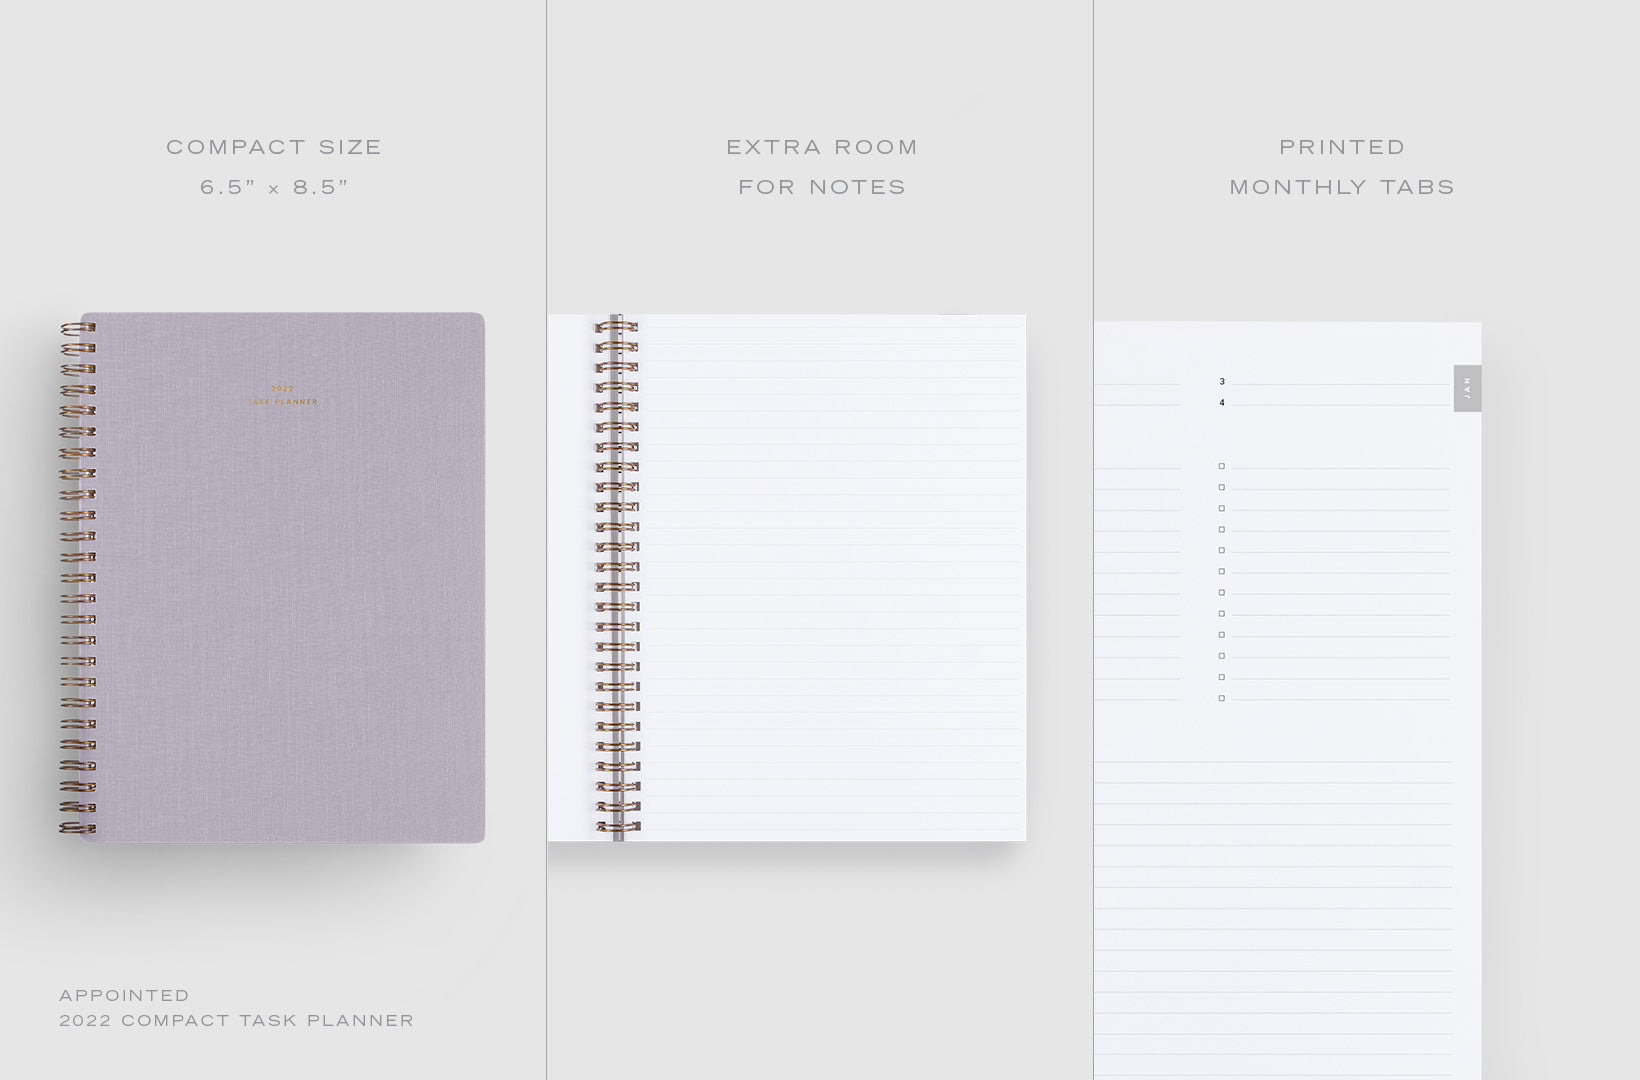 A 3-part image shows details of the 2022 Compact Task Planner including compact size, extra room for notes, and printed monthly tabs